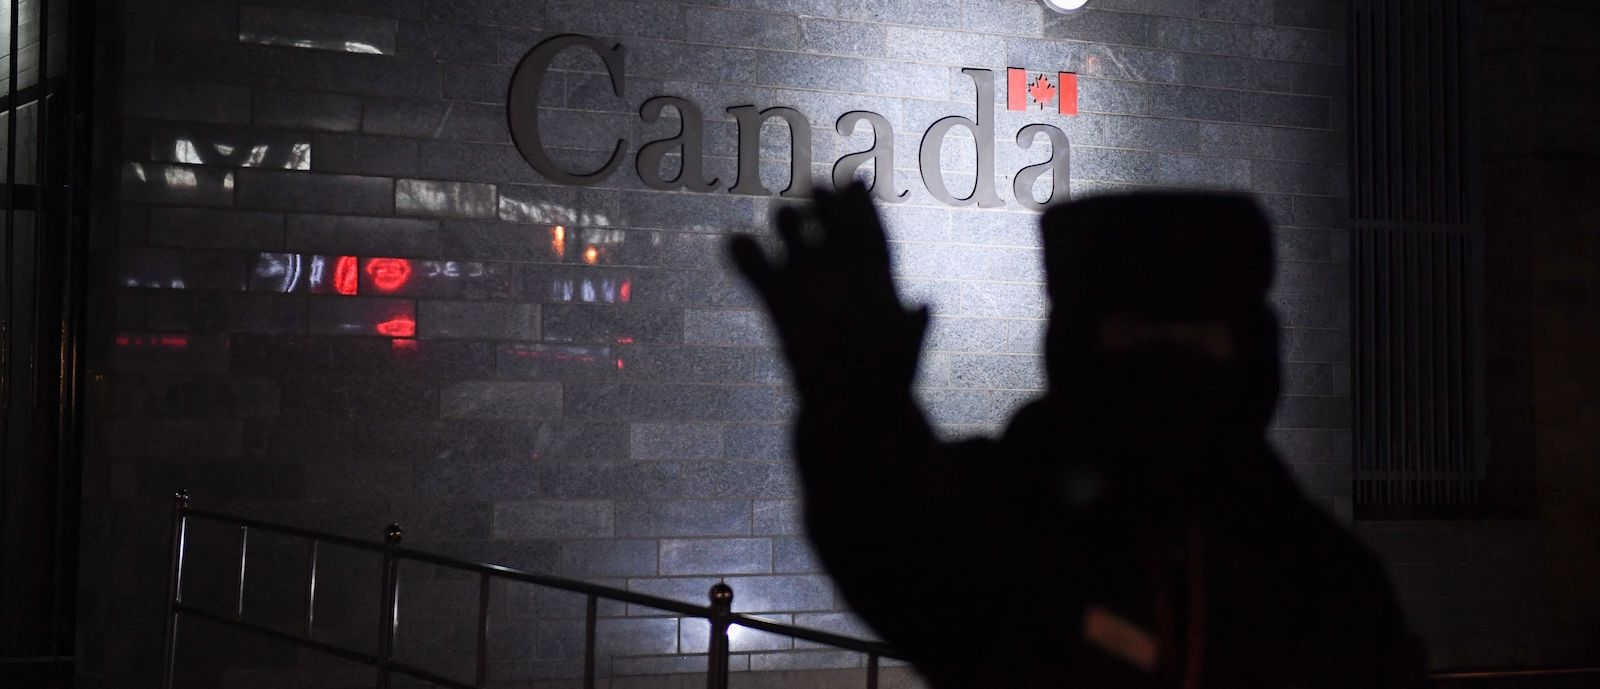 A guard tries to block photos being taken as he patrols outside the Canadian embassy in Beijing on 14 January (Photo: Greg Baker via Getty)